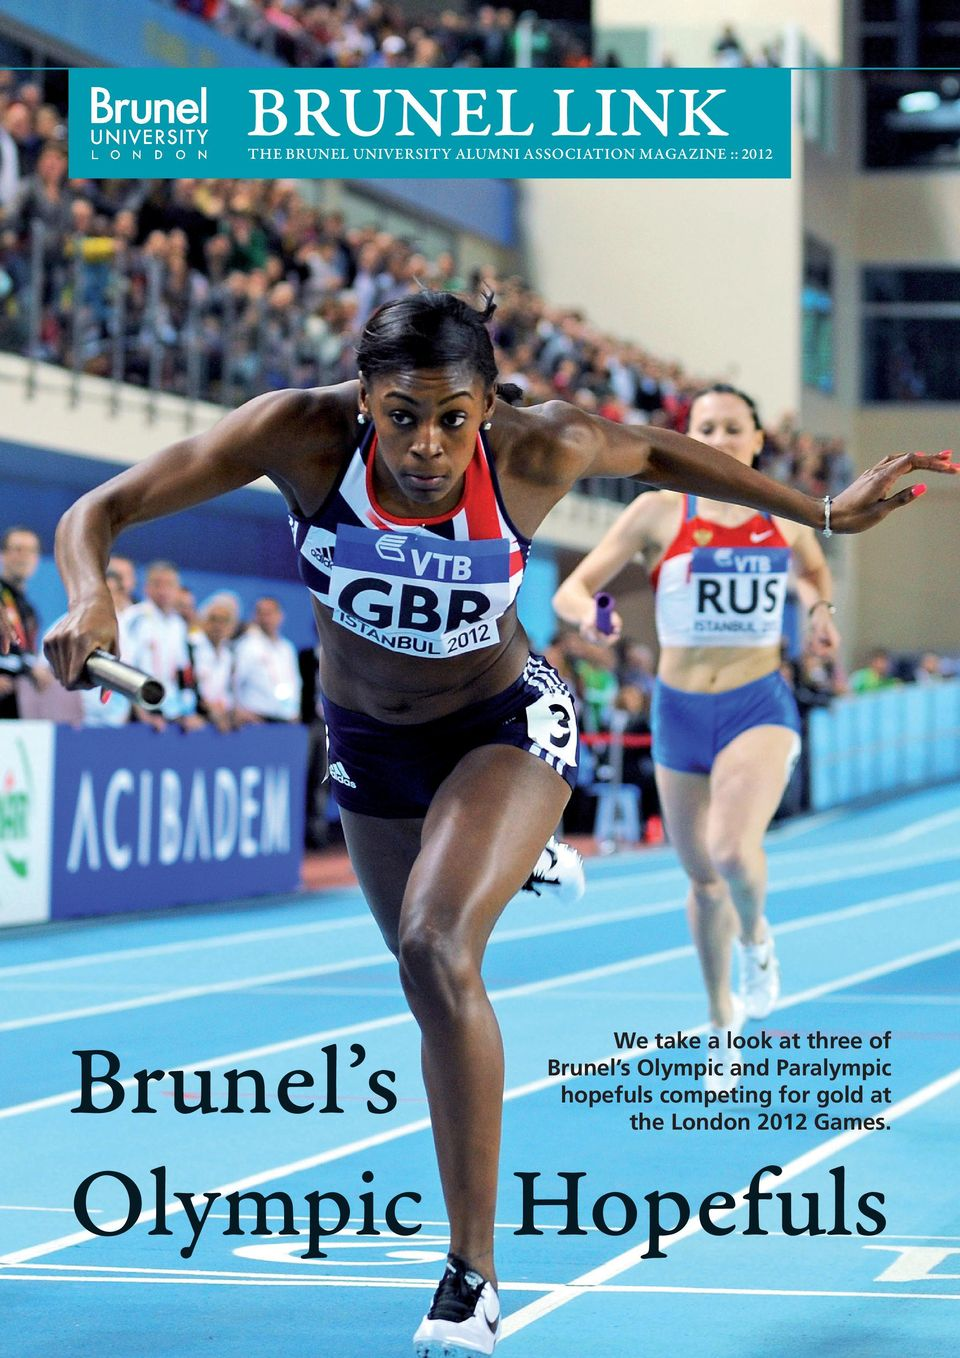 Hopefuls We take a look at three of Brunel s Olympic and